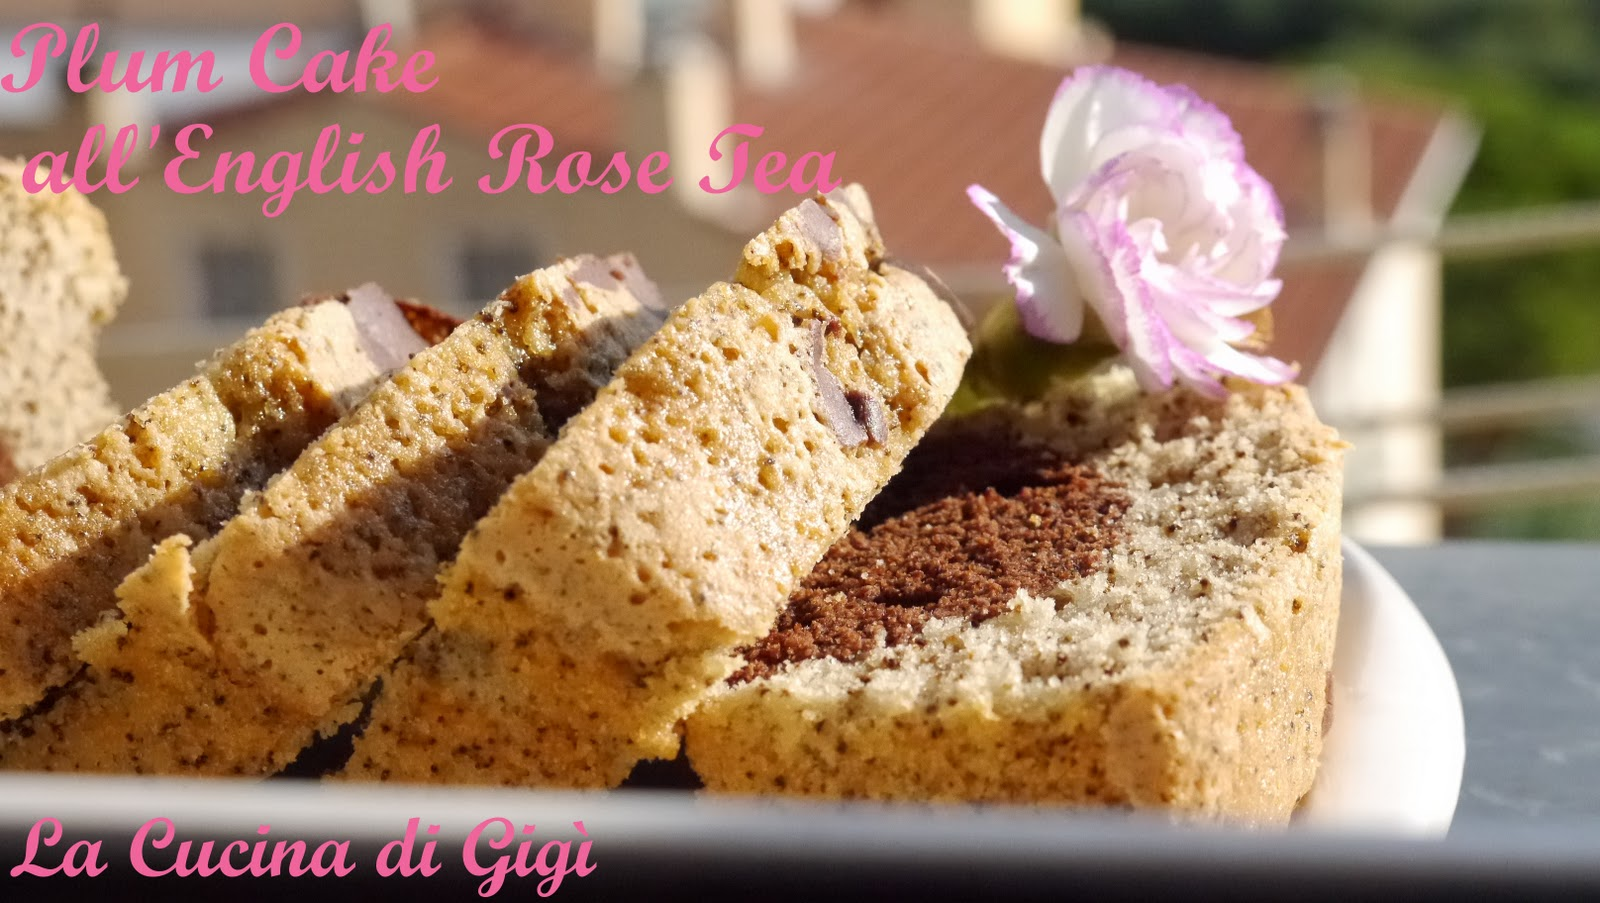 La Cucina Means What In English La Cucina Di Gigì Plum Cake All 39english Rose Tea